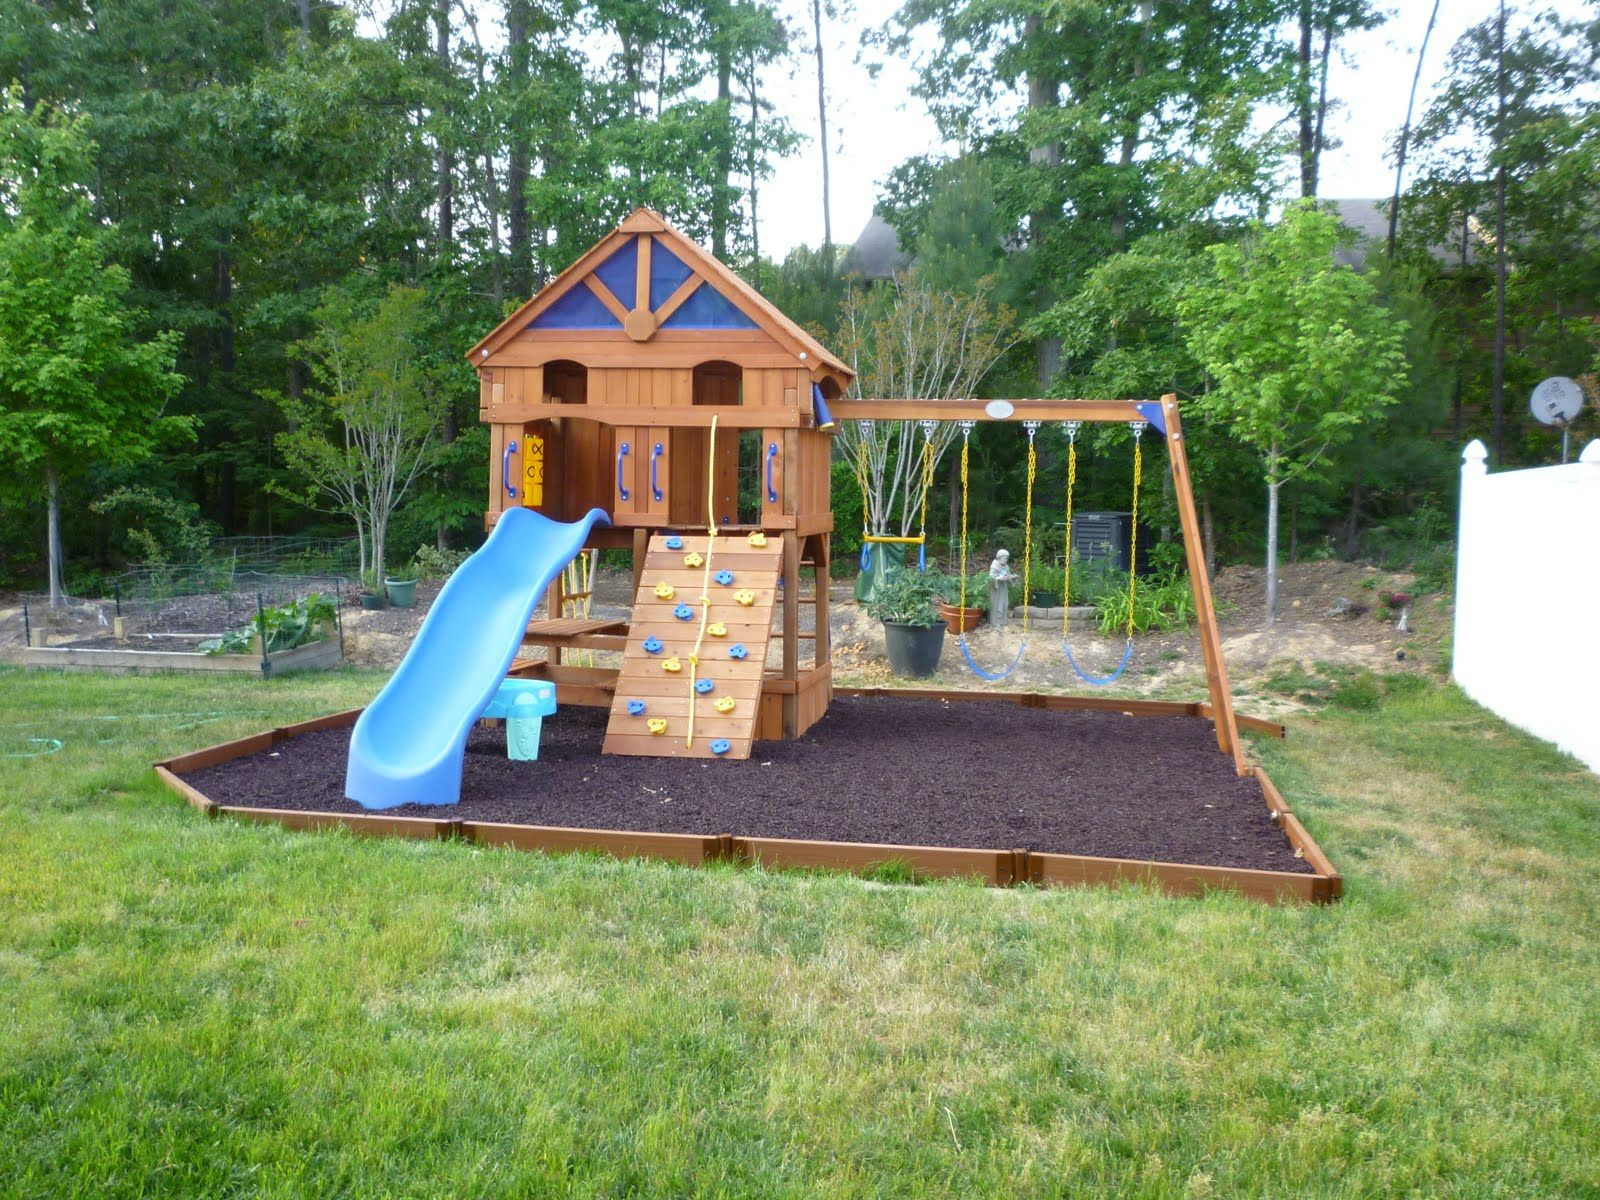 Superb Outdoor Kids Playground Design Ideas For Backyard Garden Great Pictures